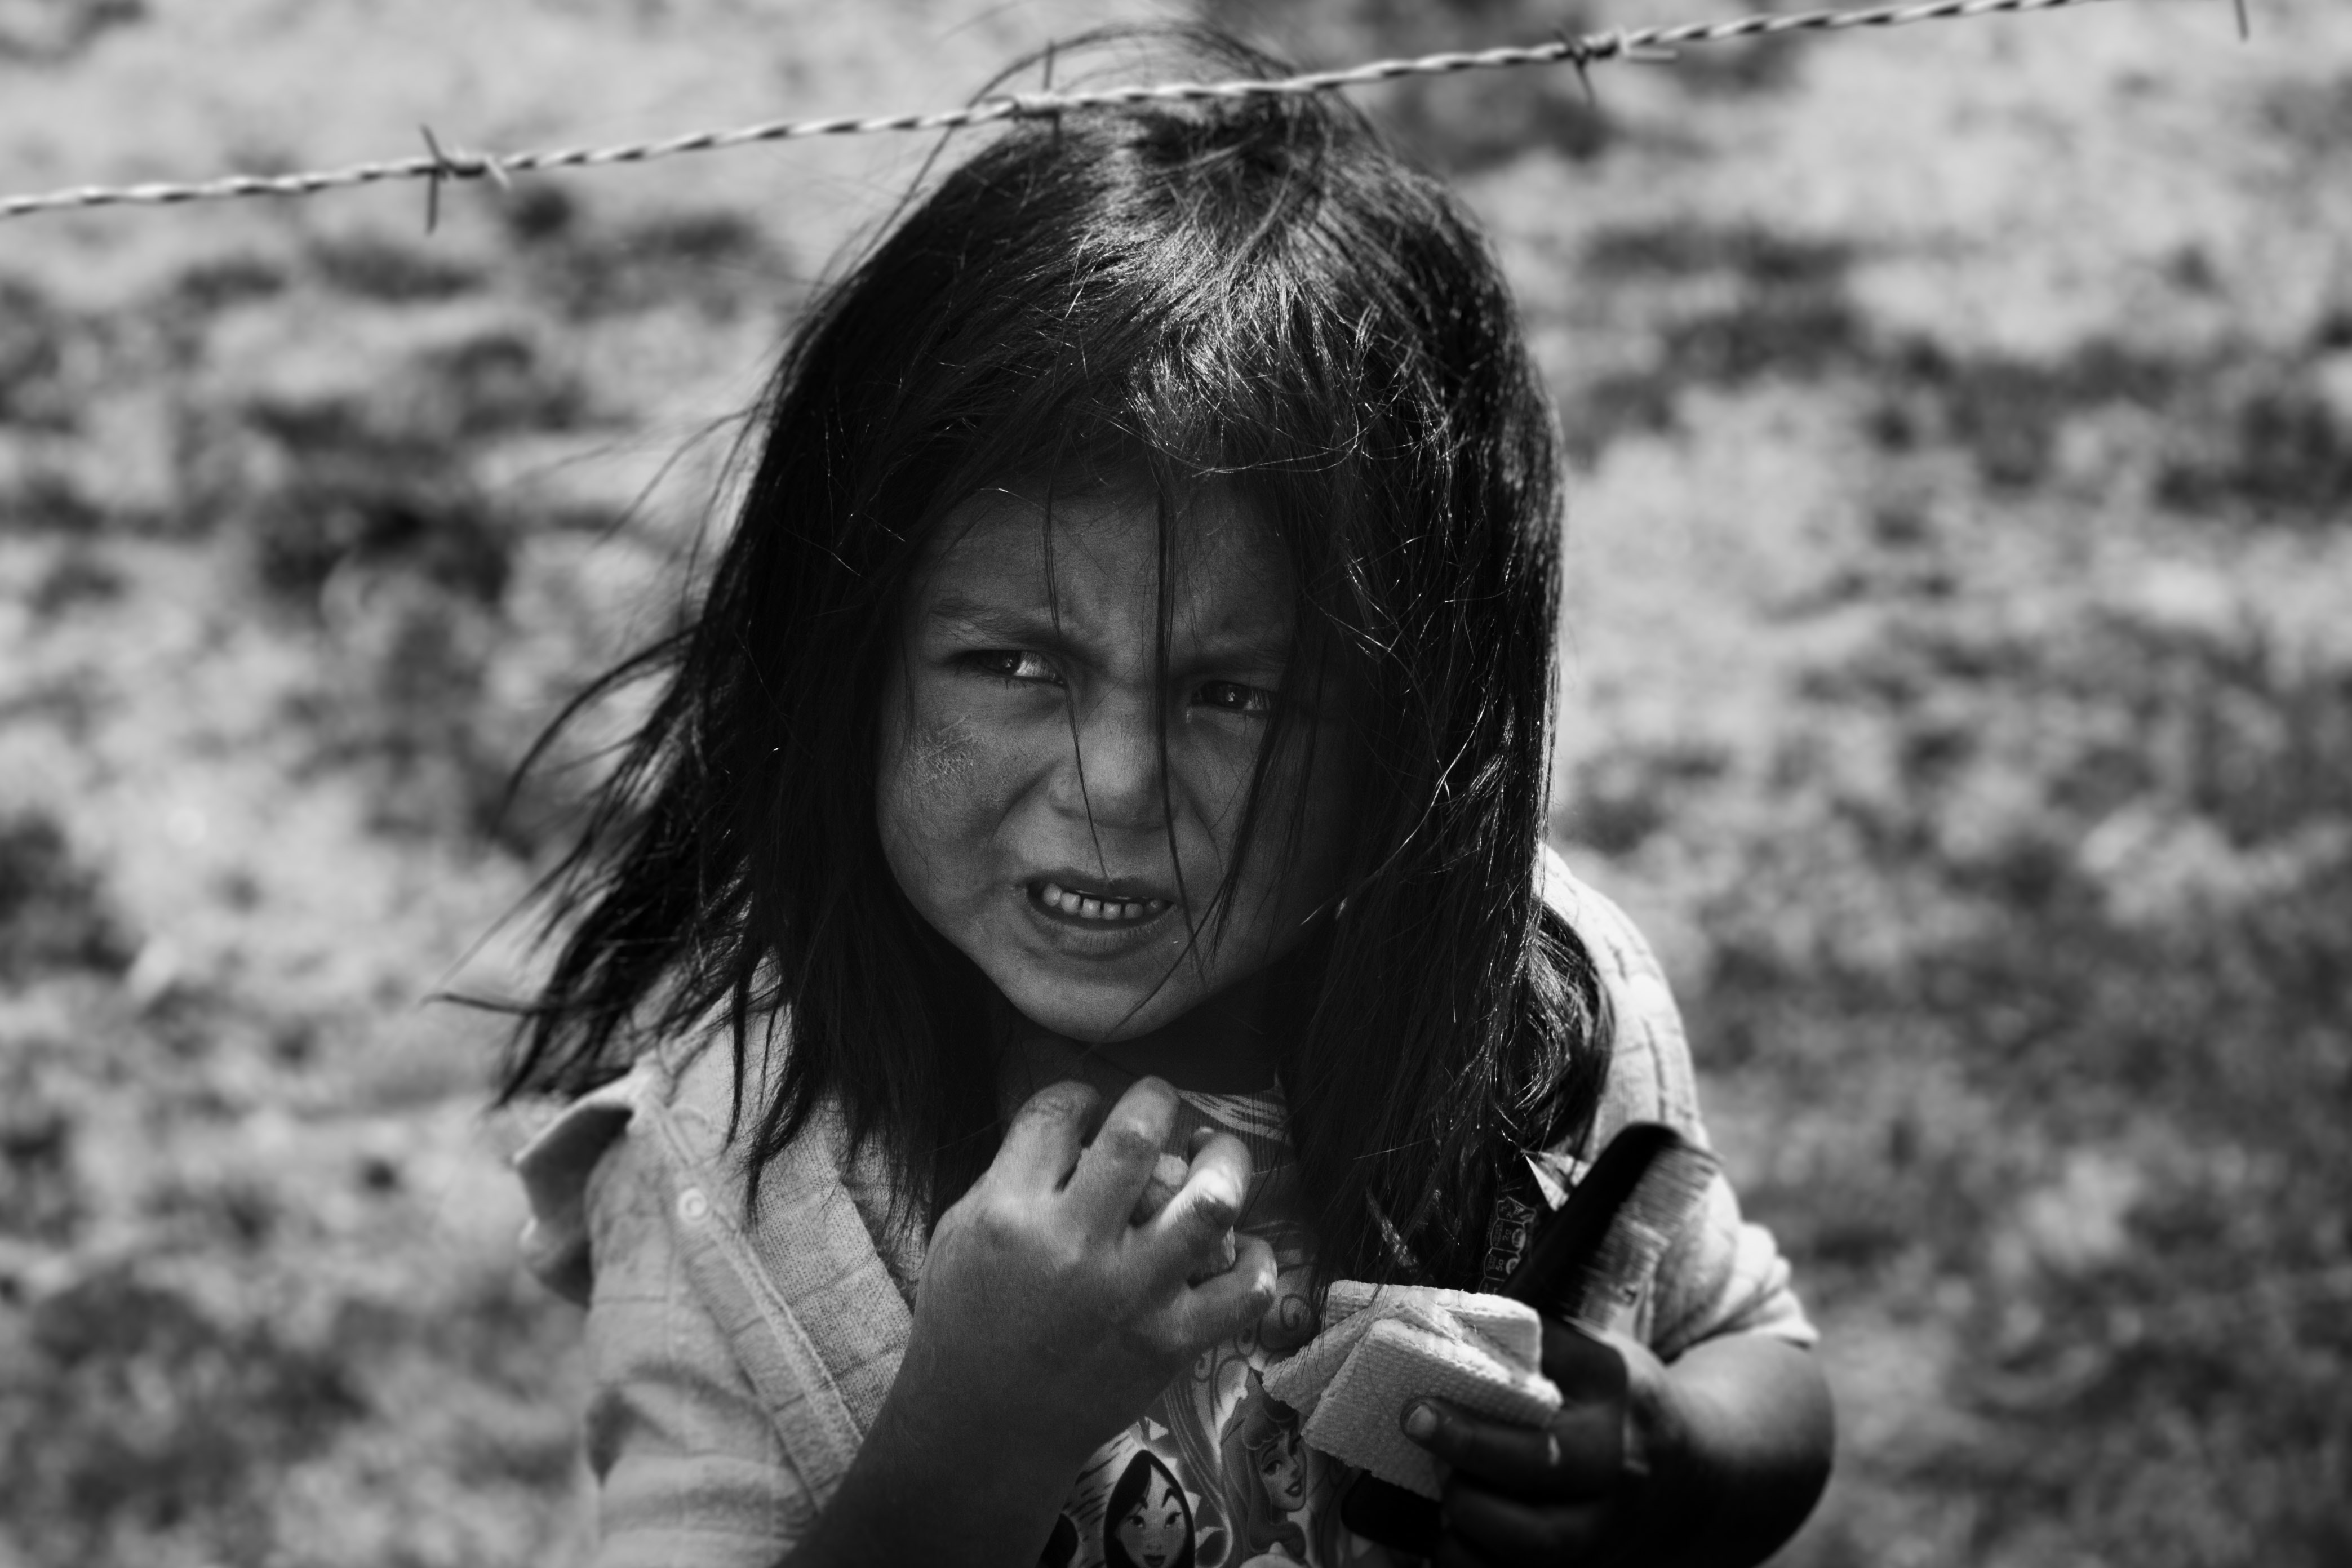 girl holding hair comb behind barbed wire